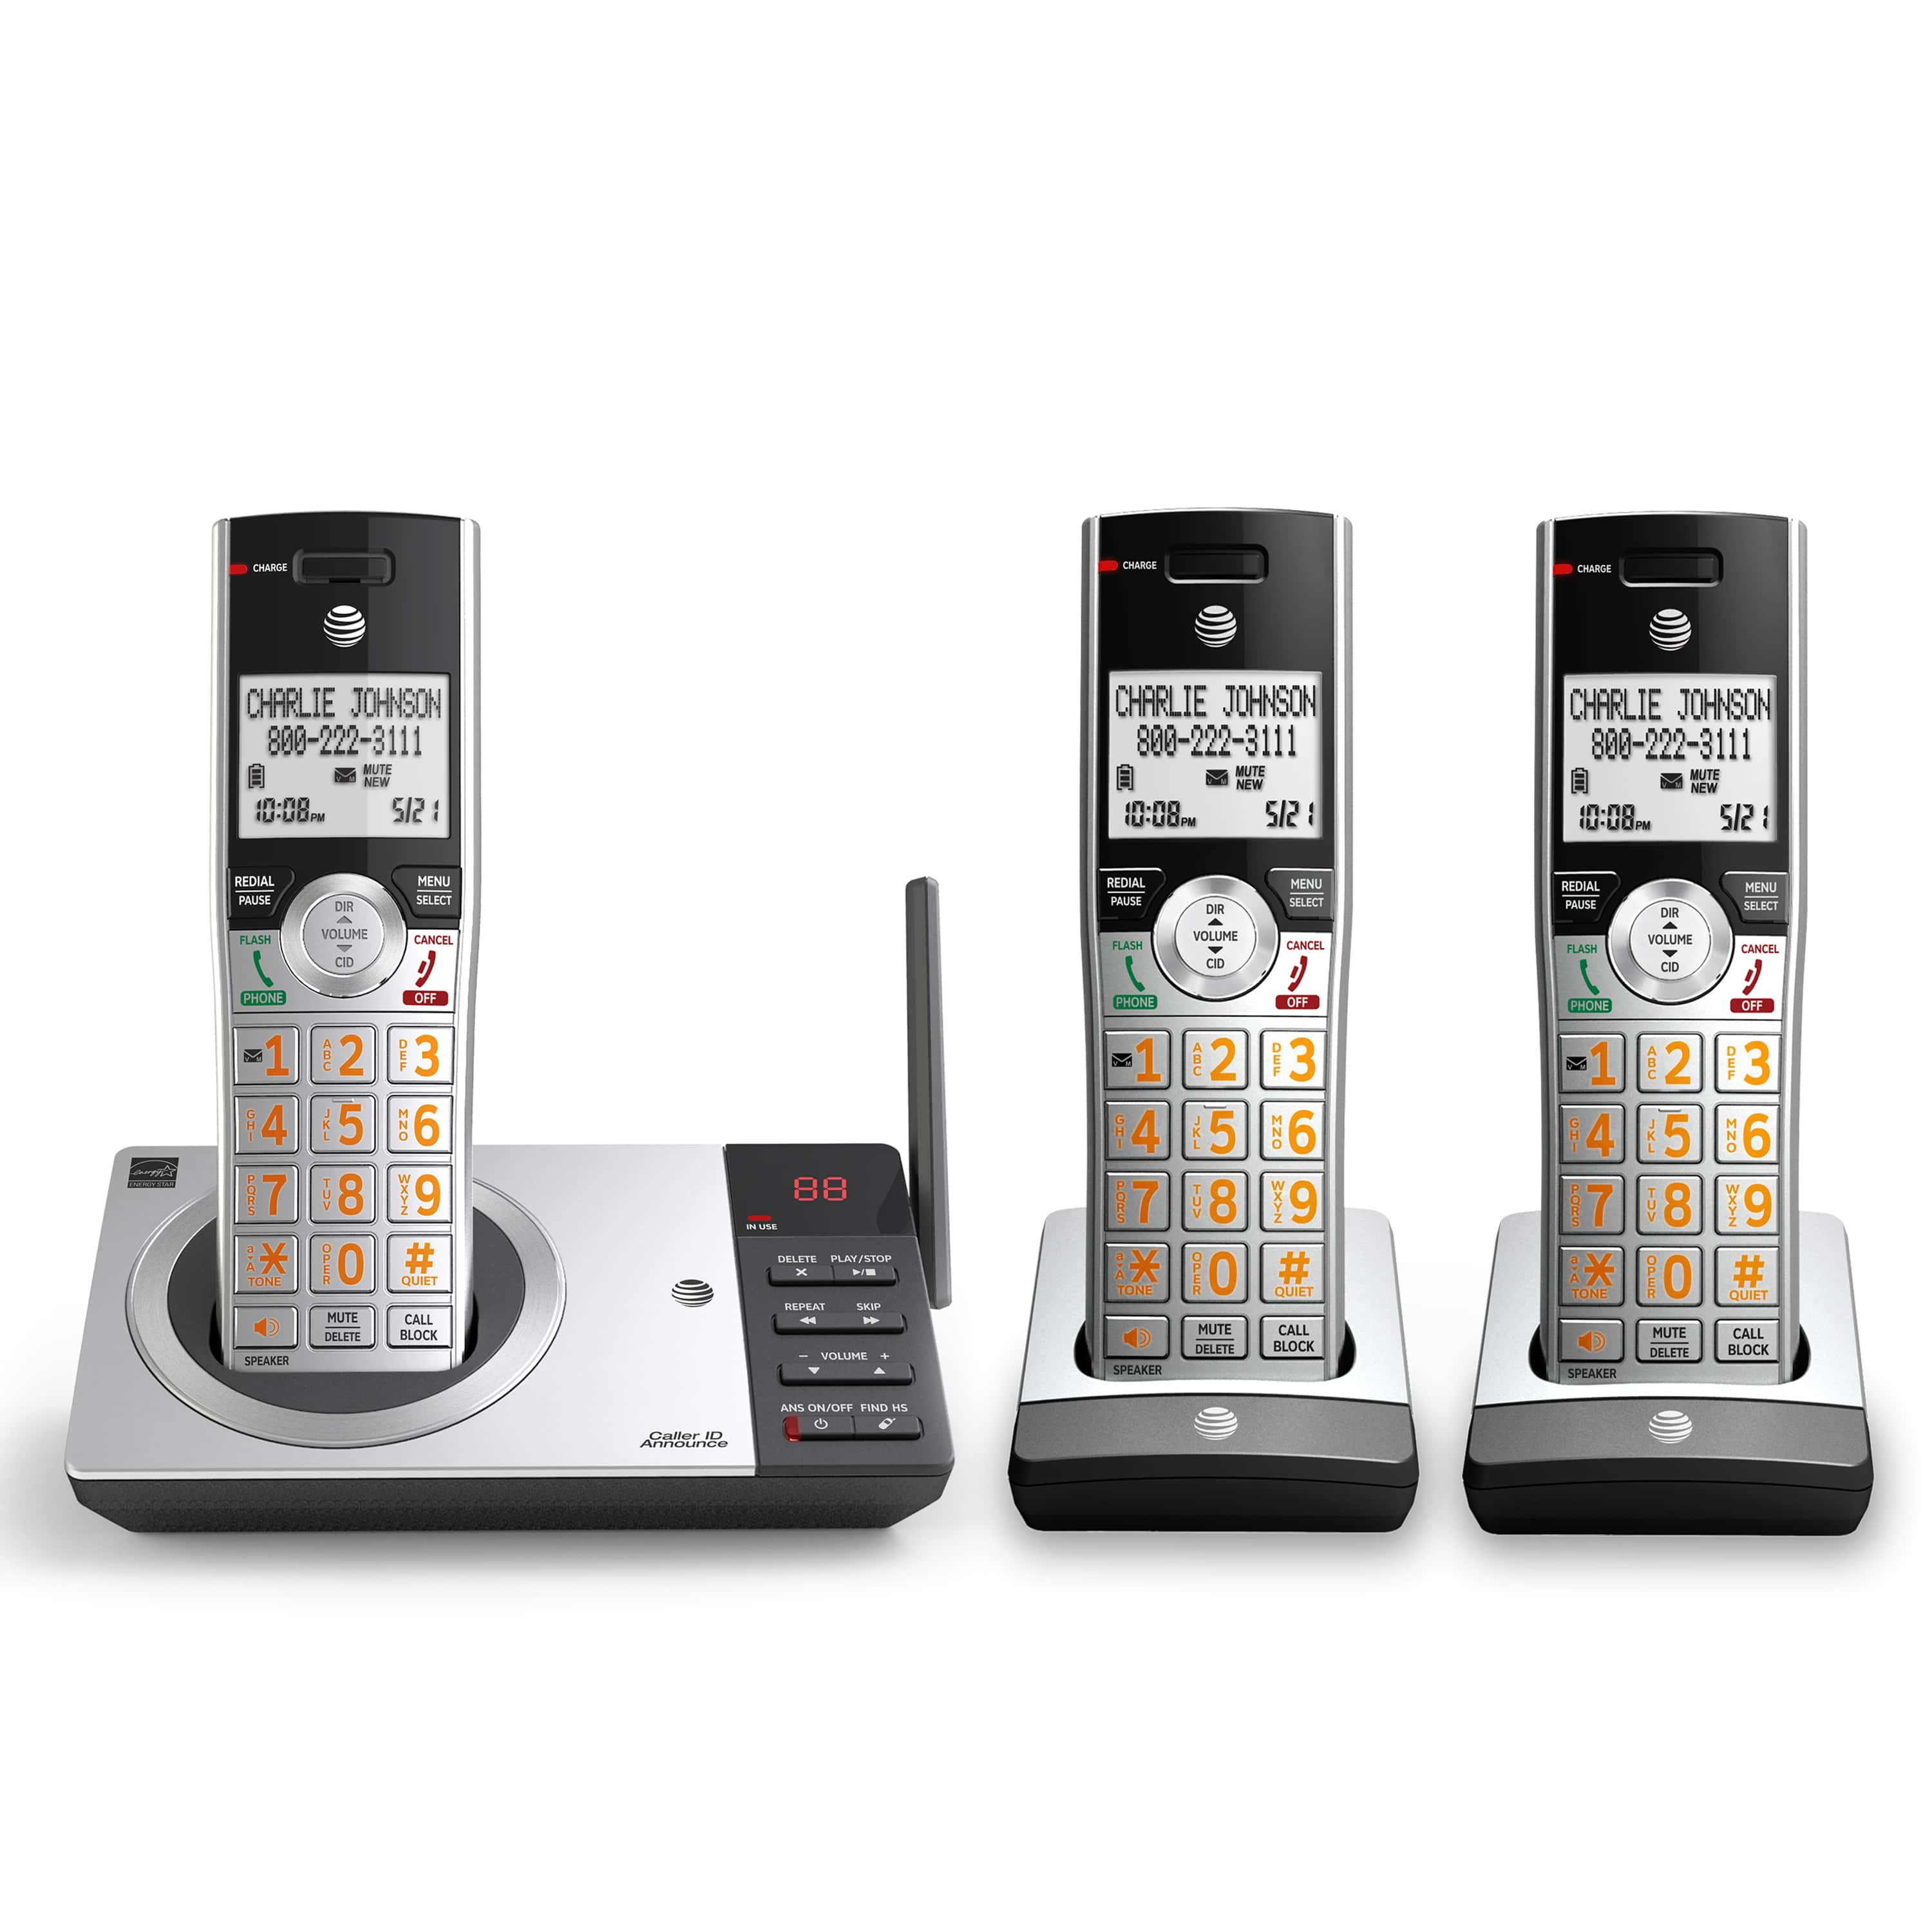 NEW AT/&T DECT 6.0 CL83415 4-Handset Cordless Phone with Answering System